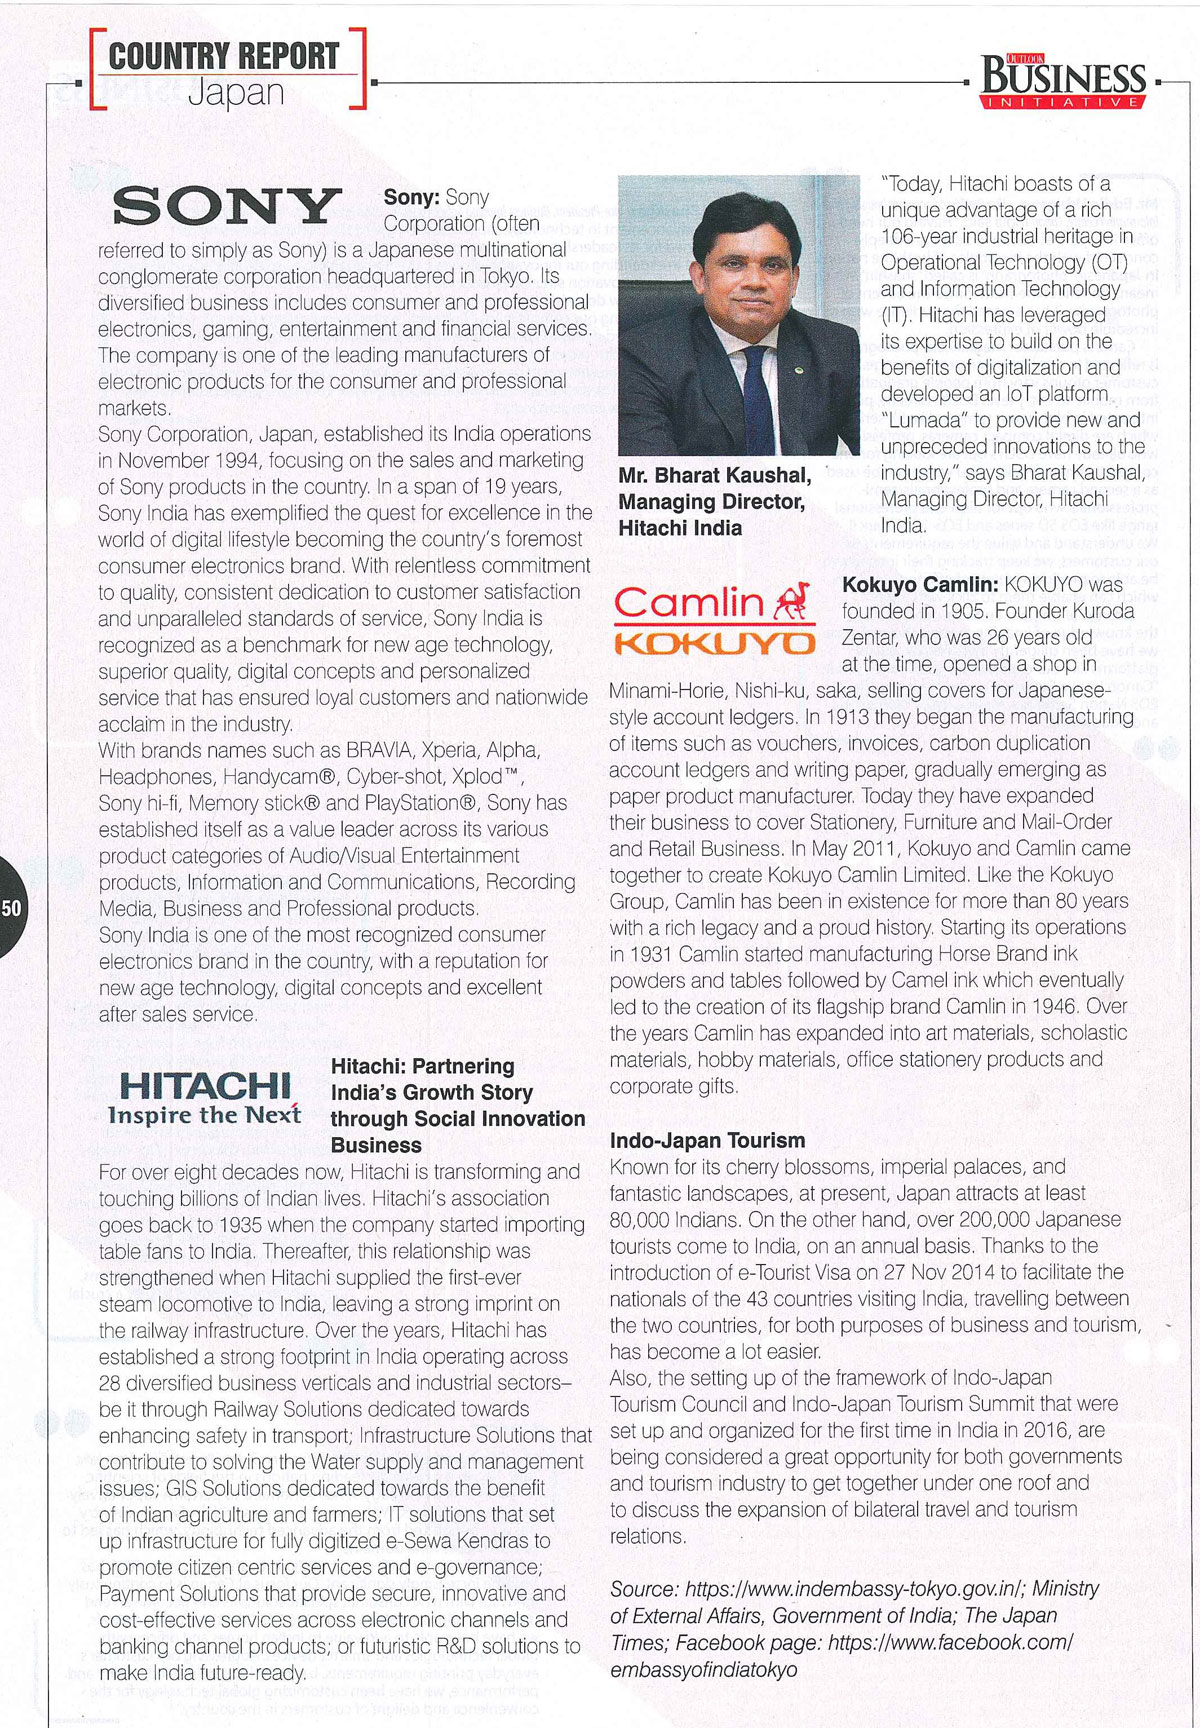 Hitachi: Partnering India's Growth Story through Social Innovation Business